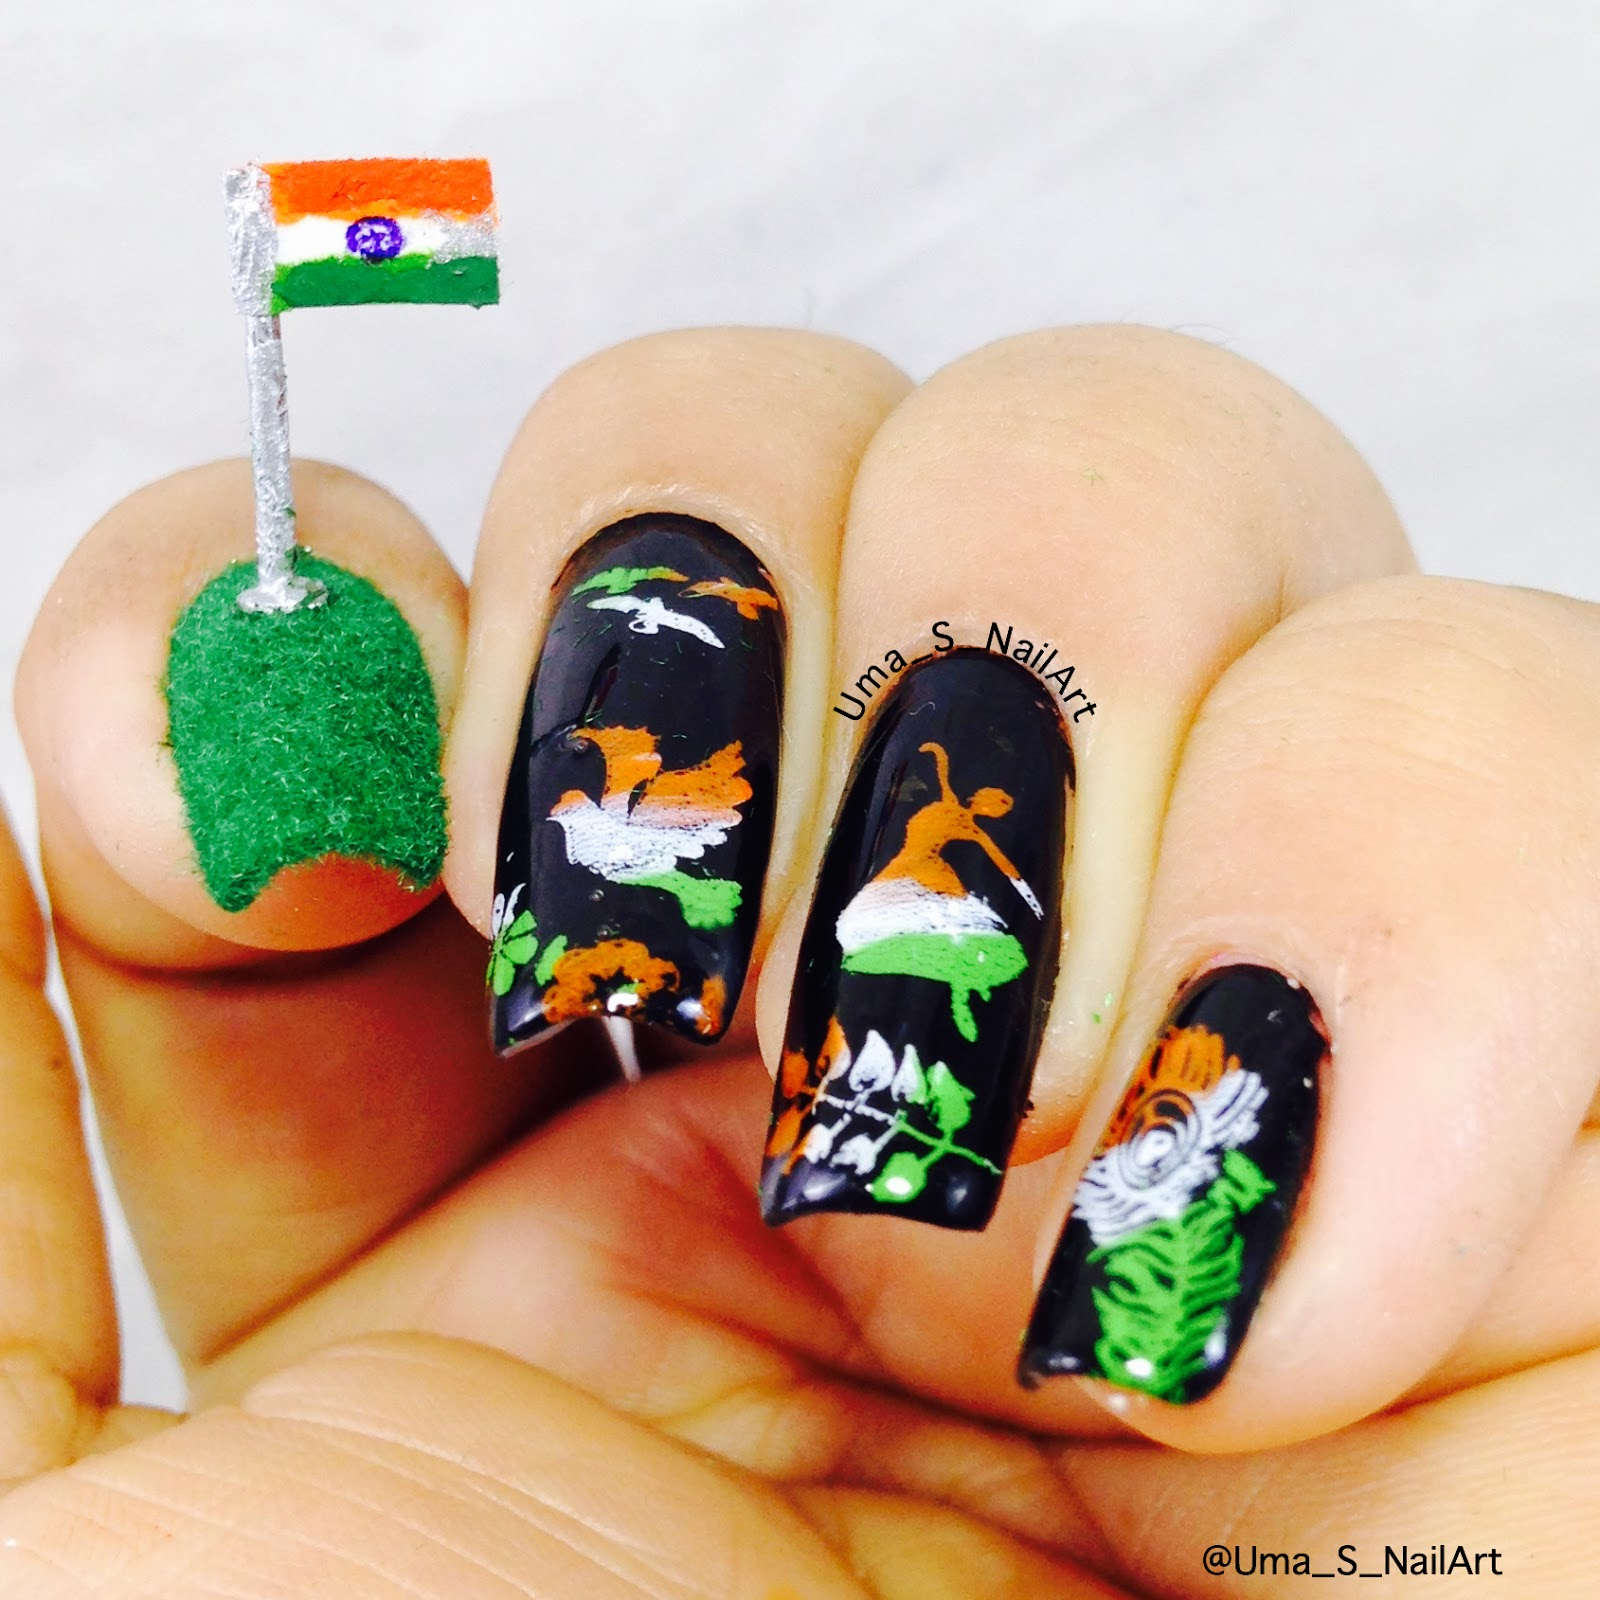 Umas nail art independence day 3d nail art fingers i have symbolized peace happiness and a peacocks feather indias national bird in tricolour gradient on black base enjoy this nail art prinsesfo Image collections